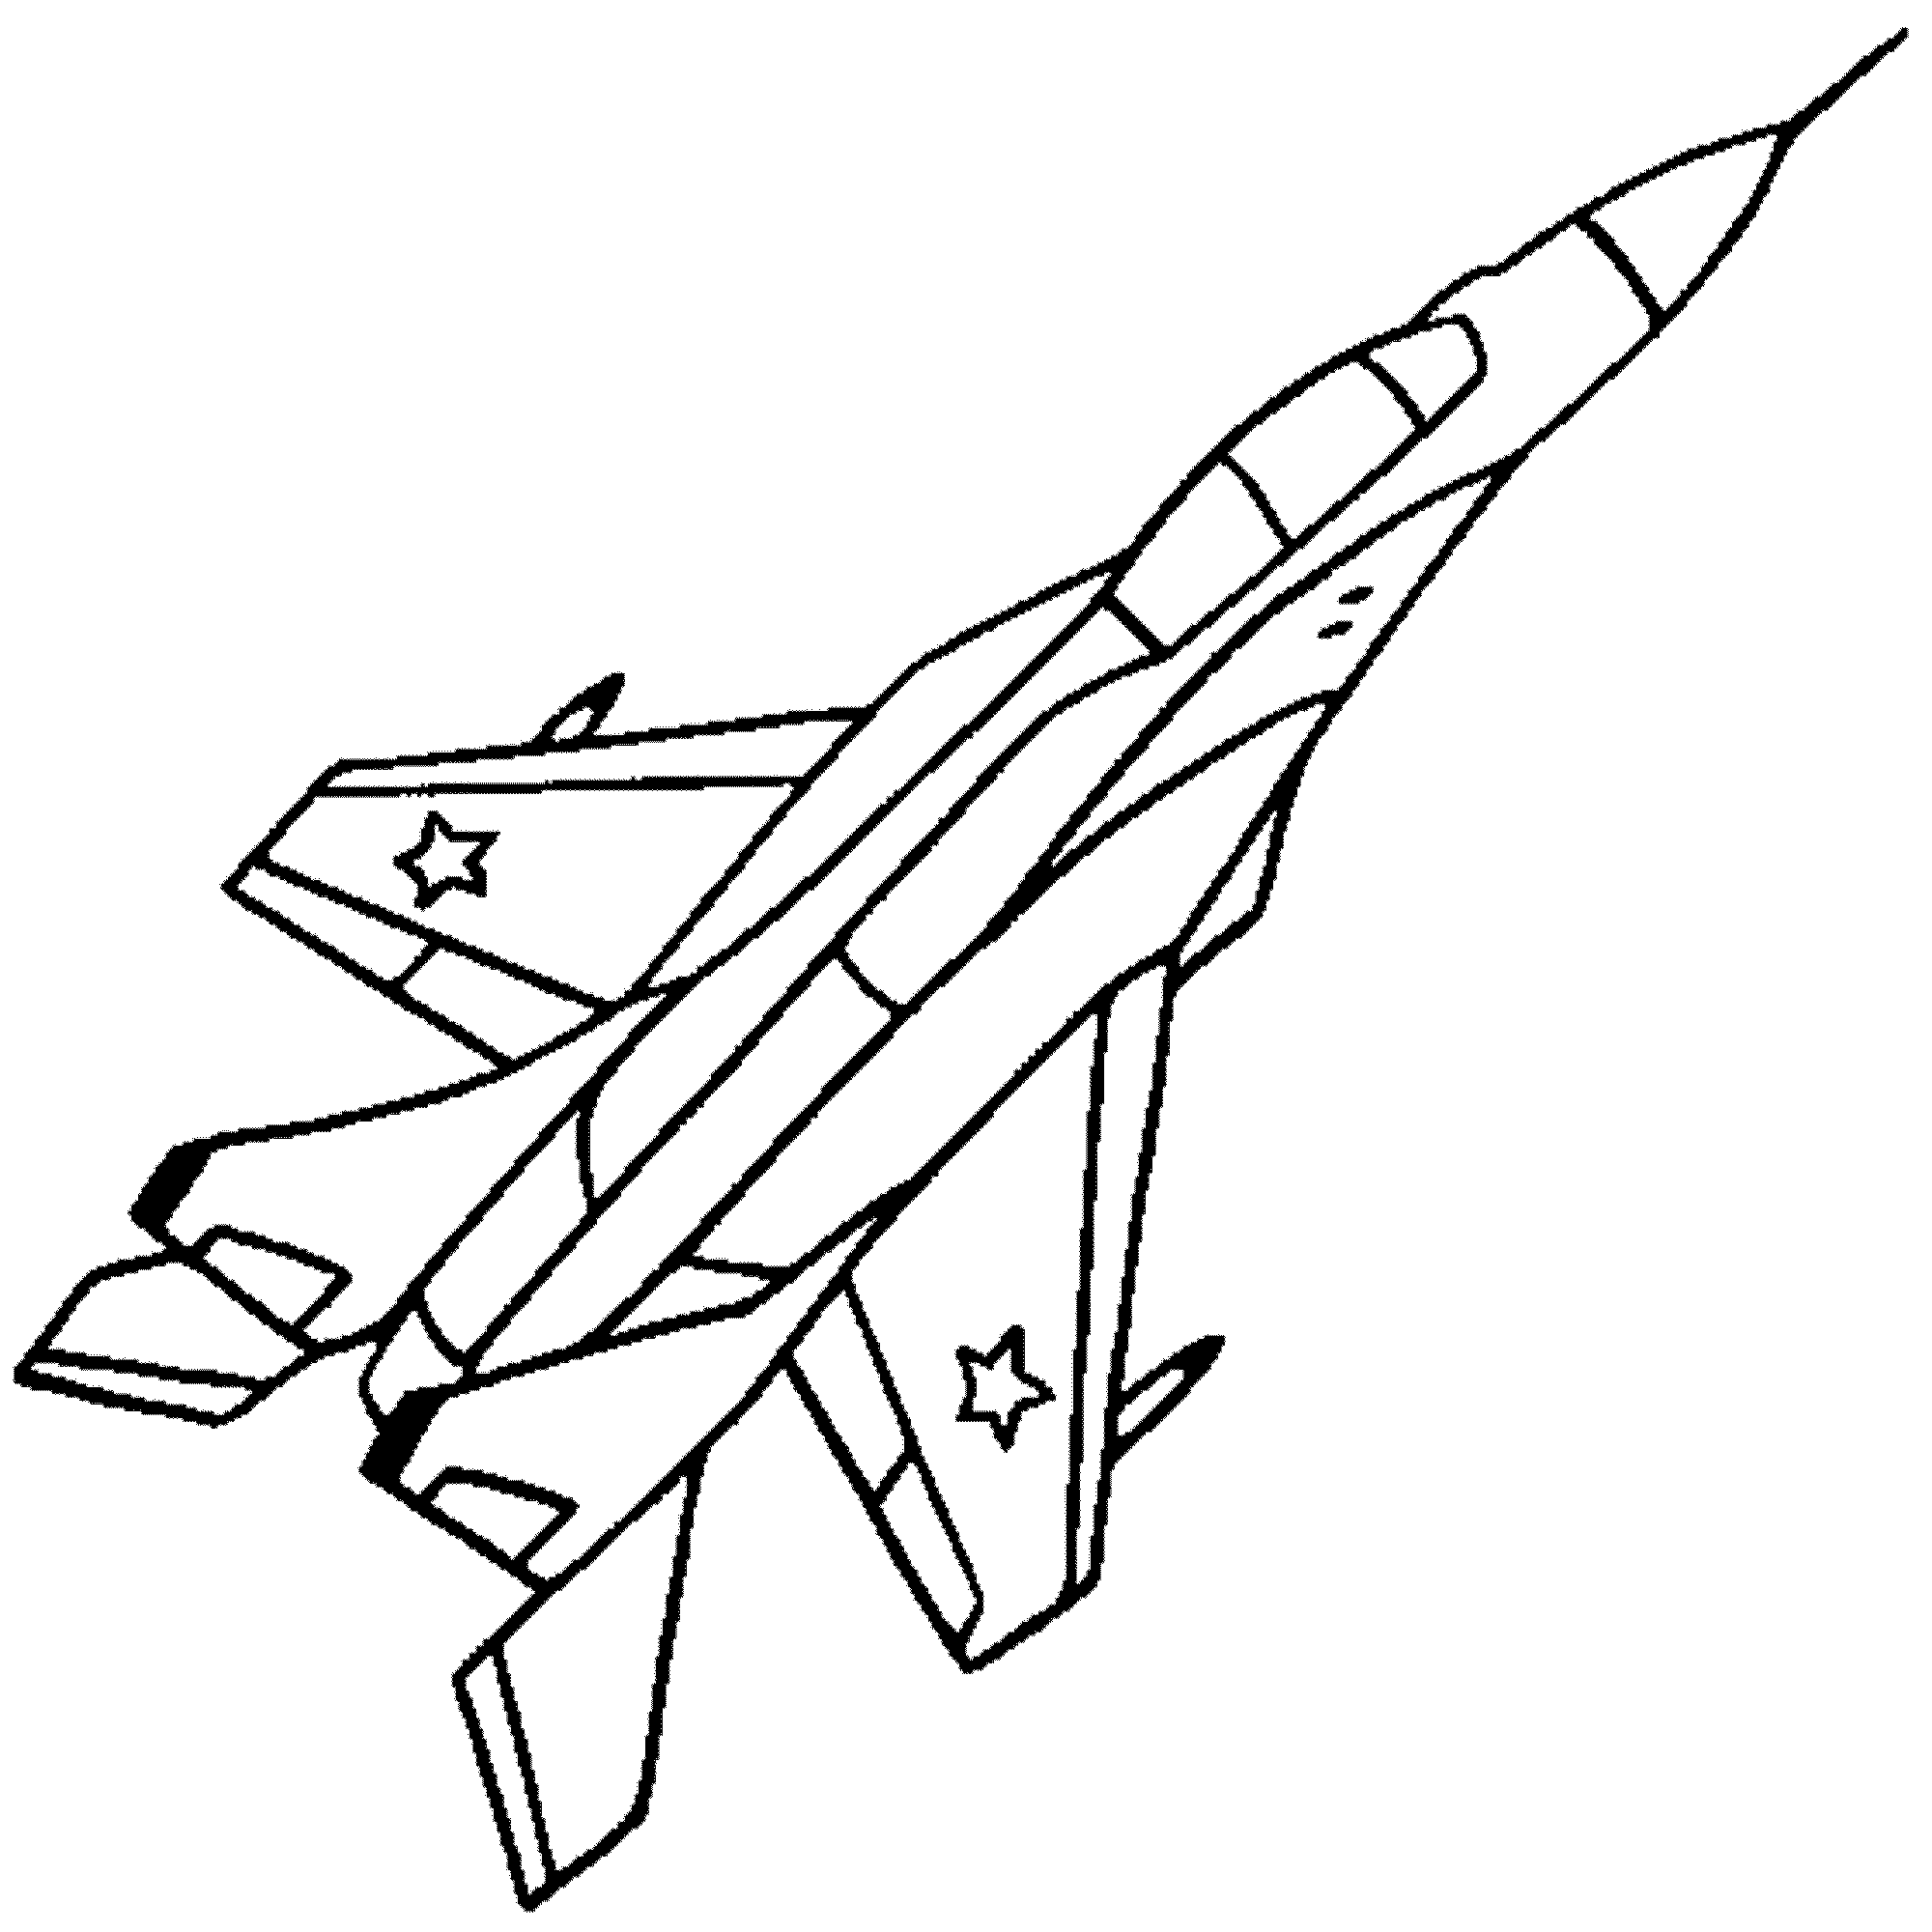 War Plane Coloring Pages At Getdrawings Free Download